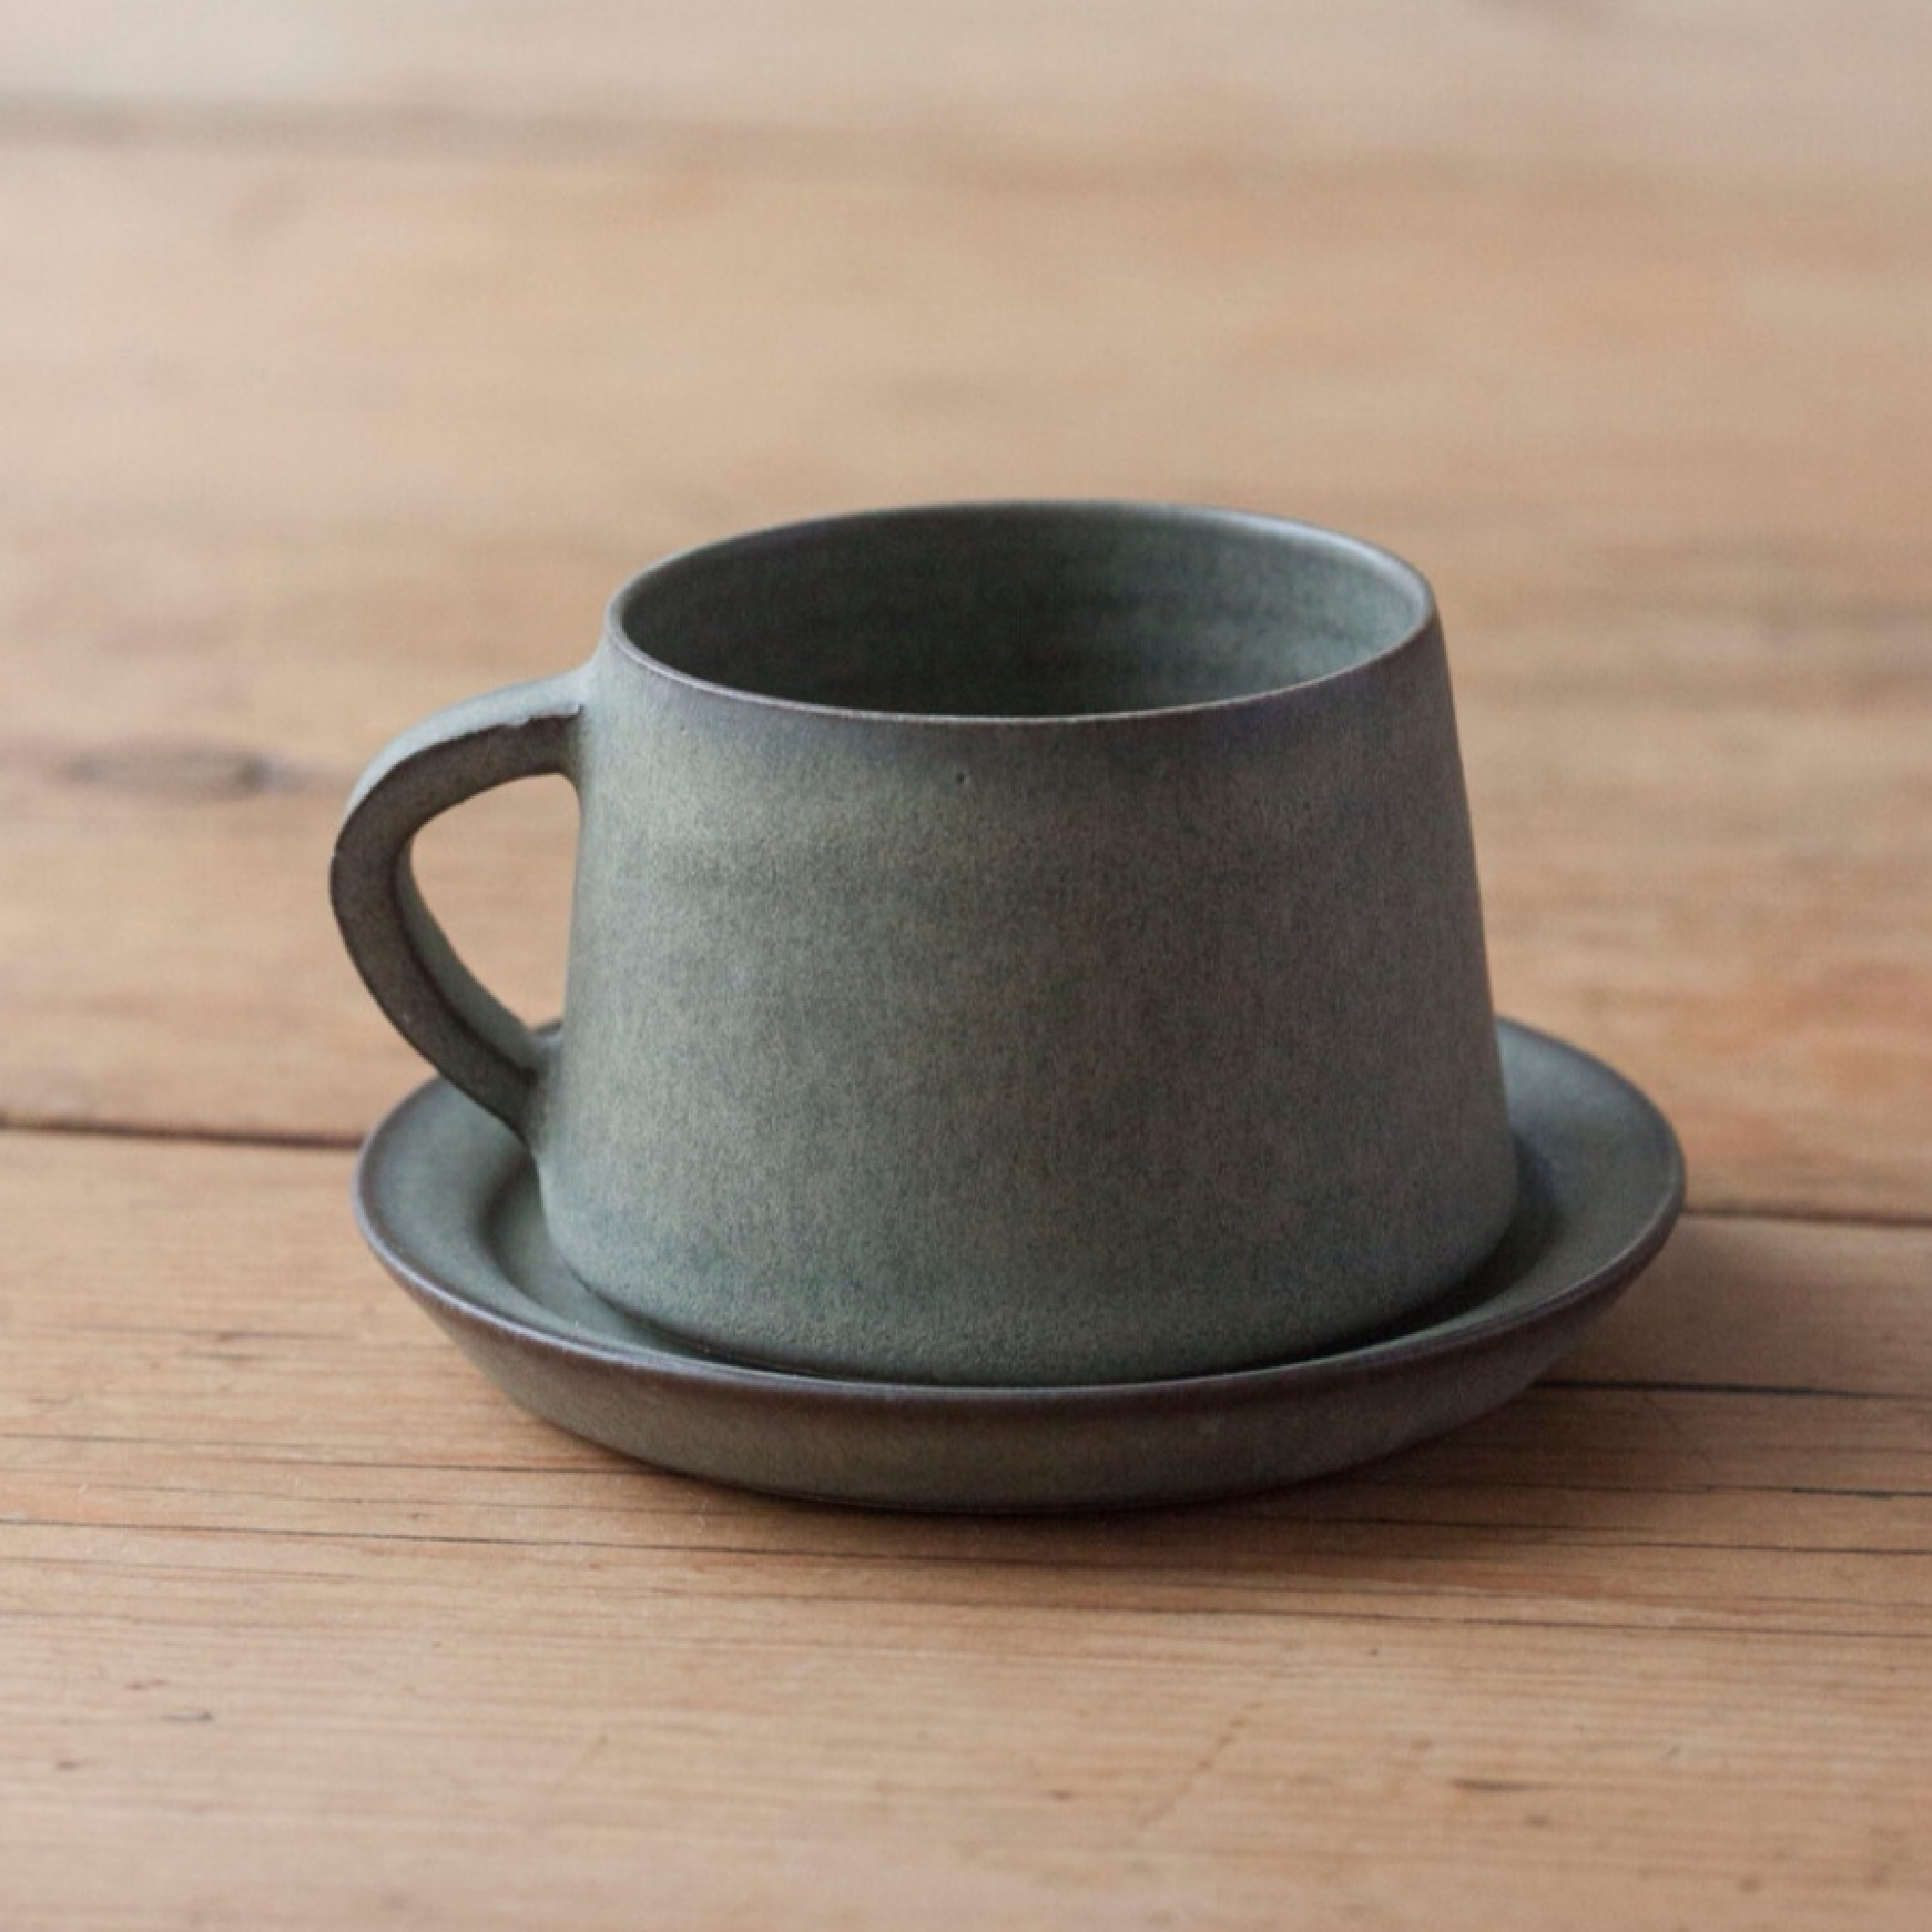 Coffee Mugs, Cups and Saucers by Borja Moronta